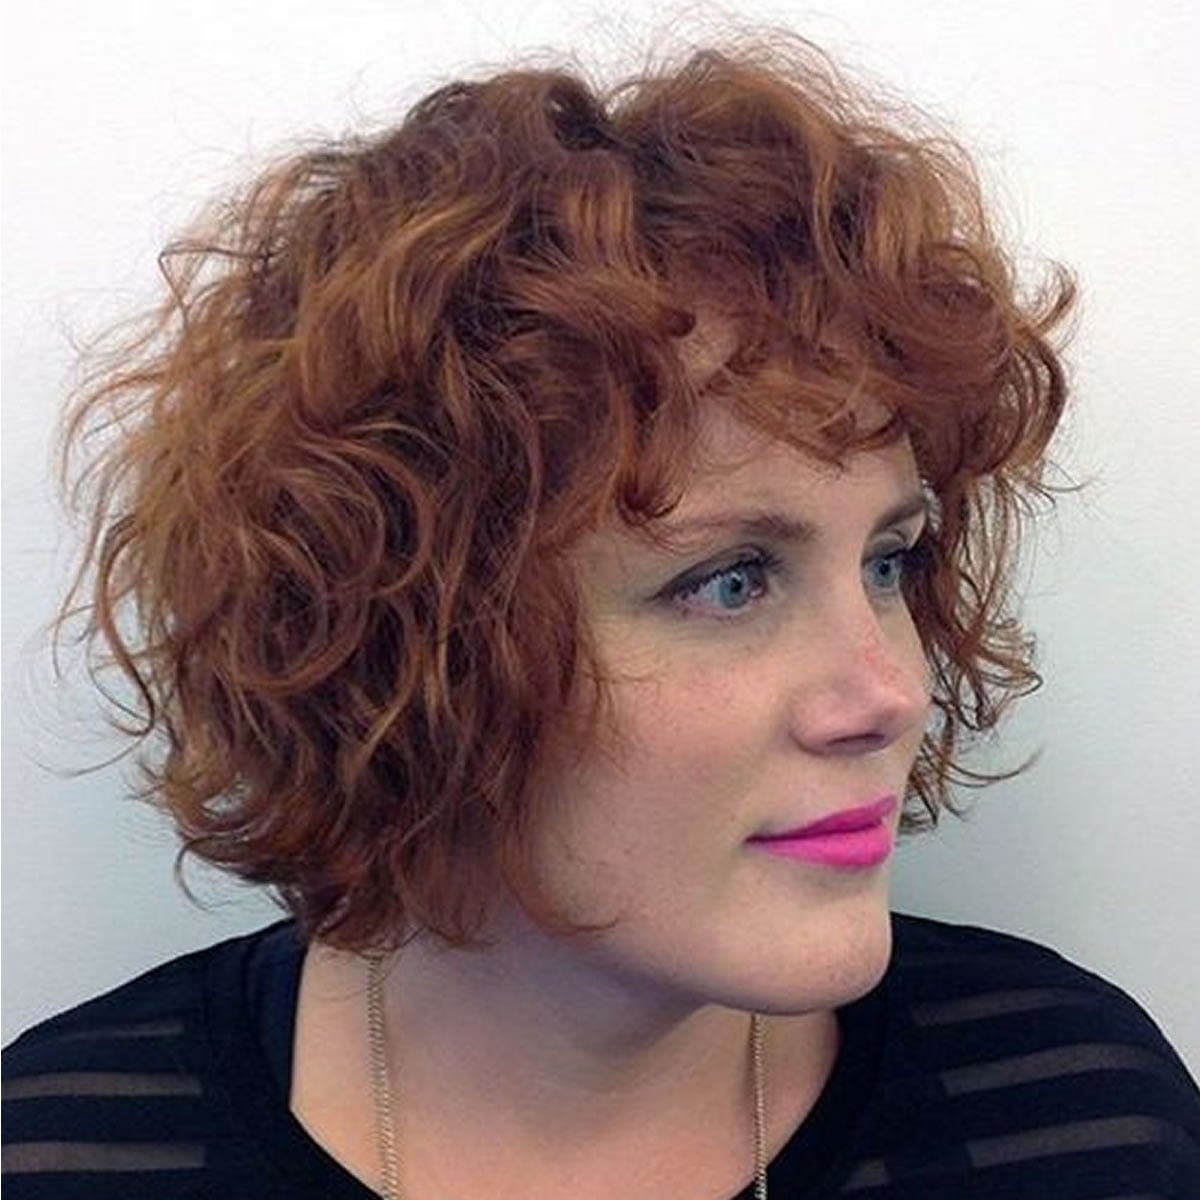 bob styles for curly hair curly bob hairstyles for autumn amp winter hair 4995